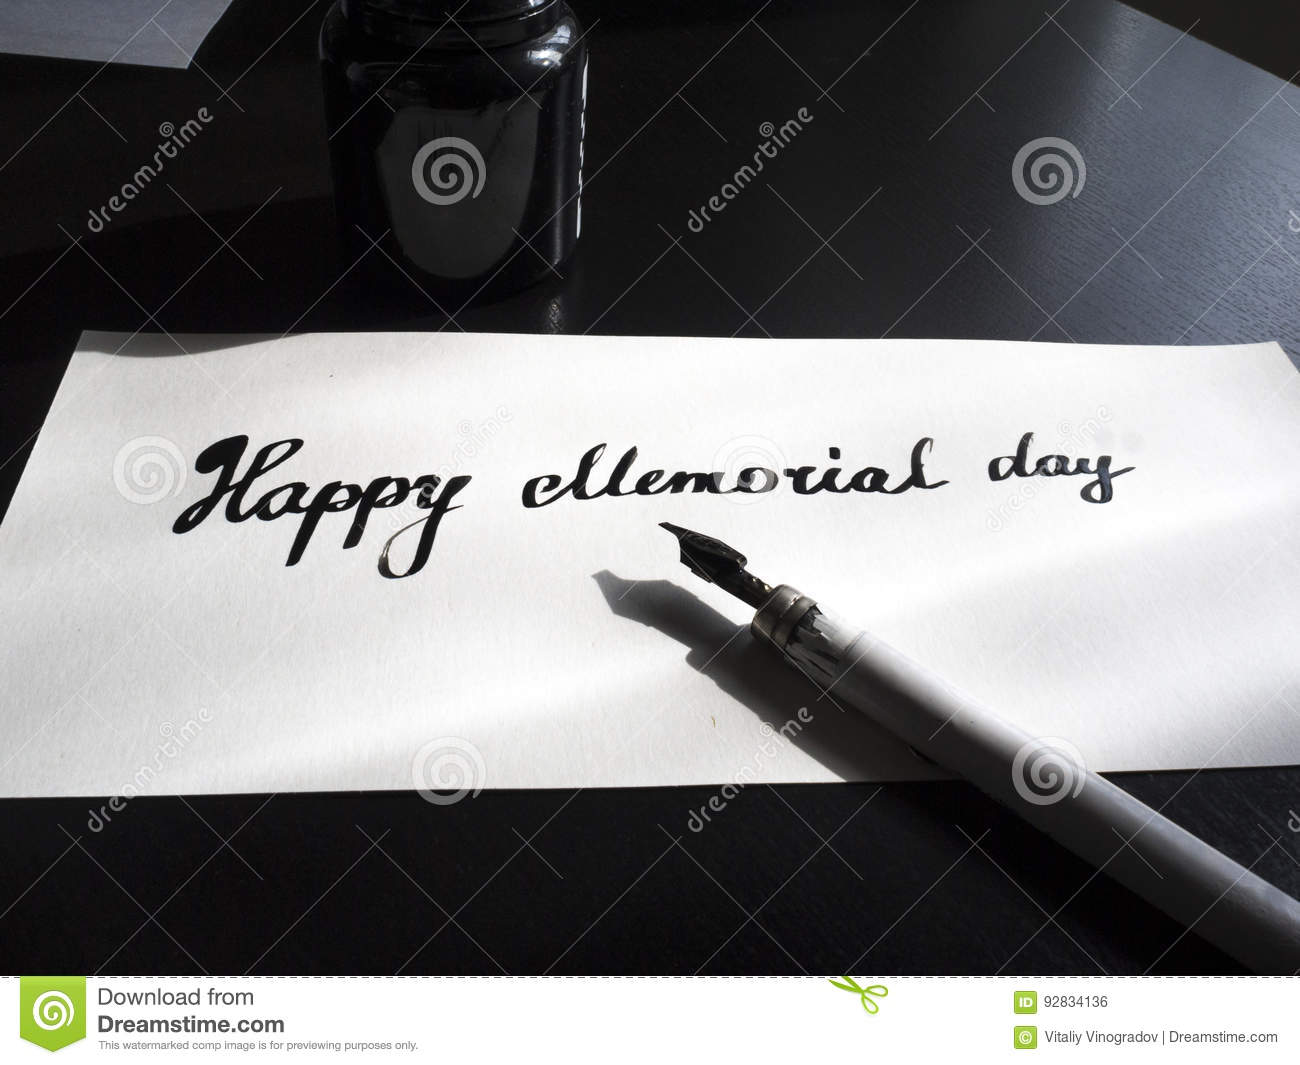 Happy Memorial day calligraphy and lettering post card. Perspective view. Small letters.